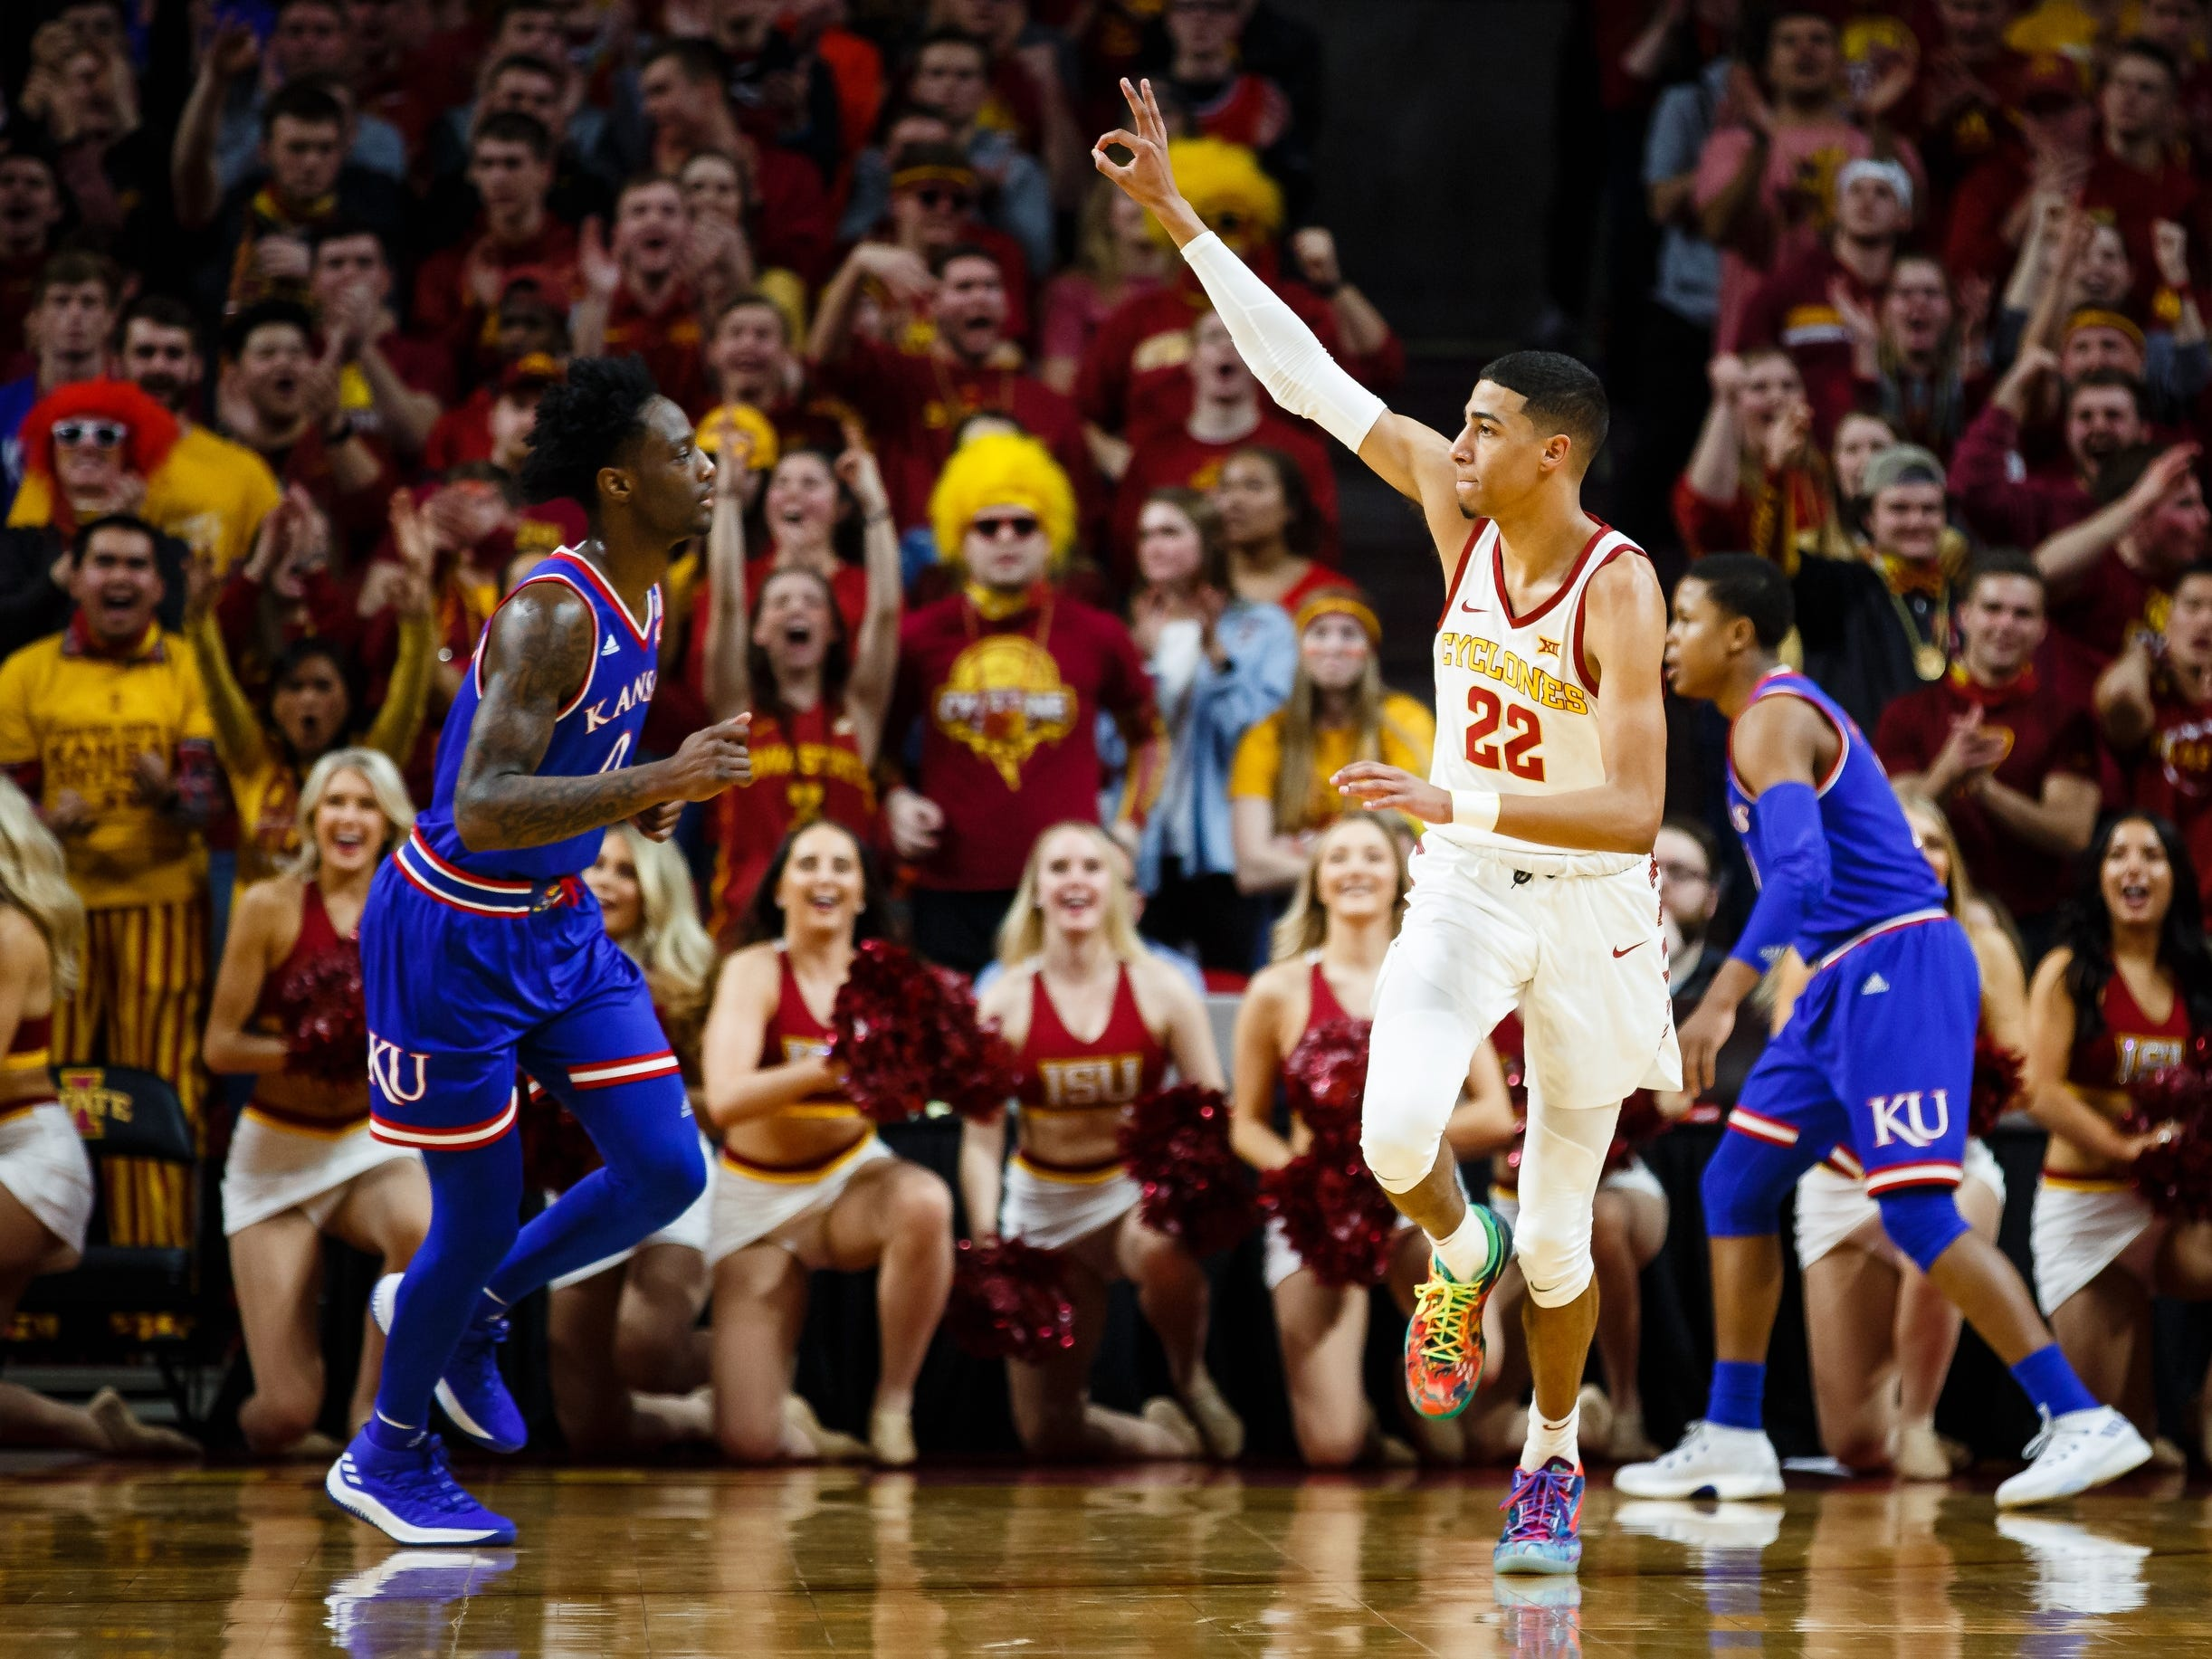 Iowa State's Tyrese Haliburton (22) reacts after a 3 point shot during the first half of their basketball game on Saturday, Jan. 5, 2019, in Ames. Iowa State would go on to win 77-60.